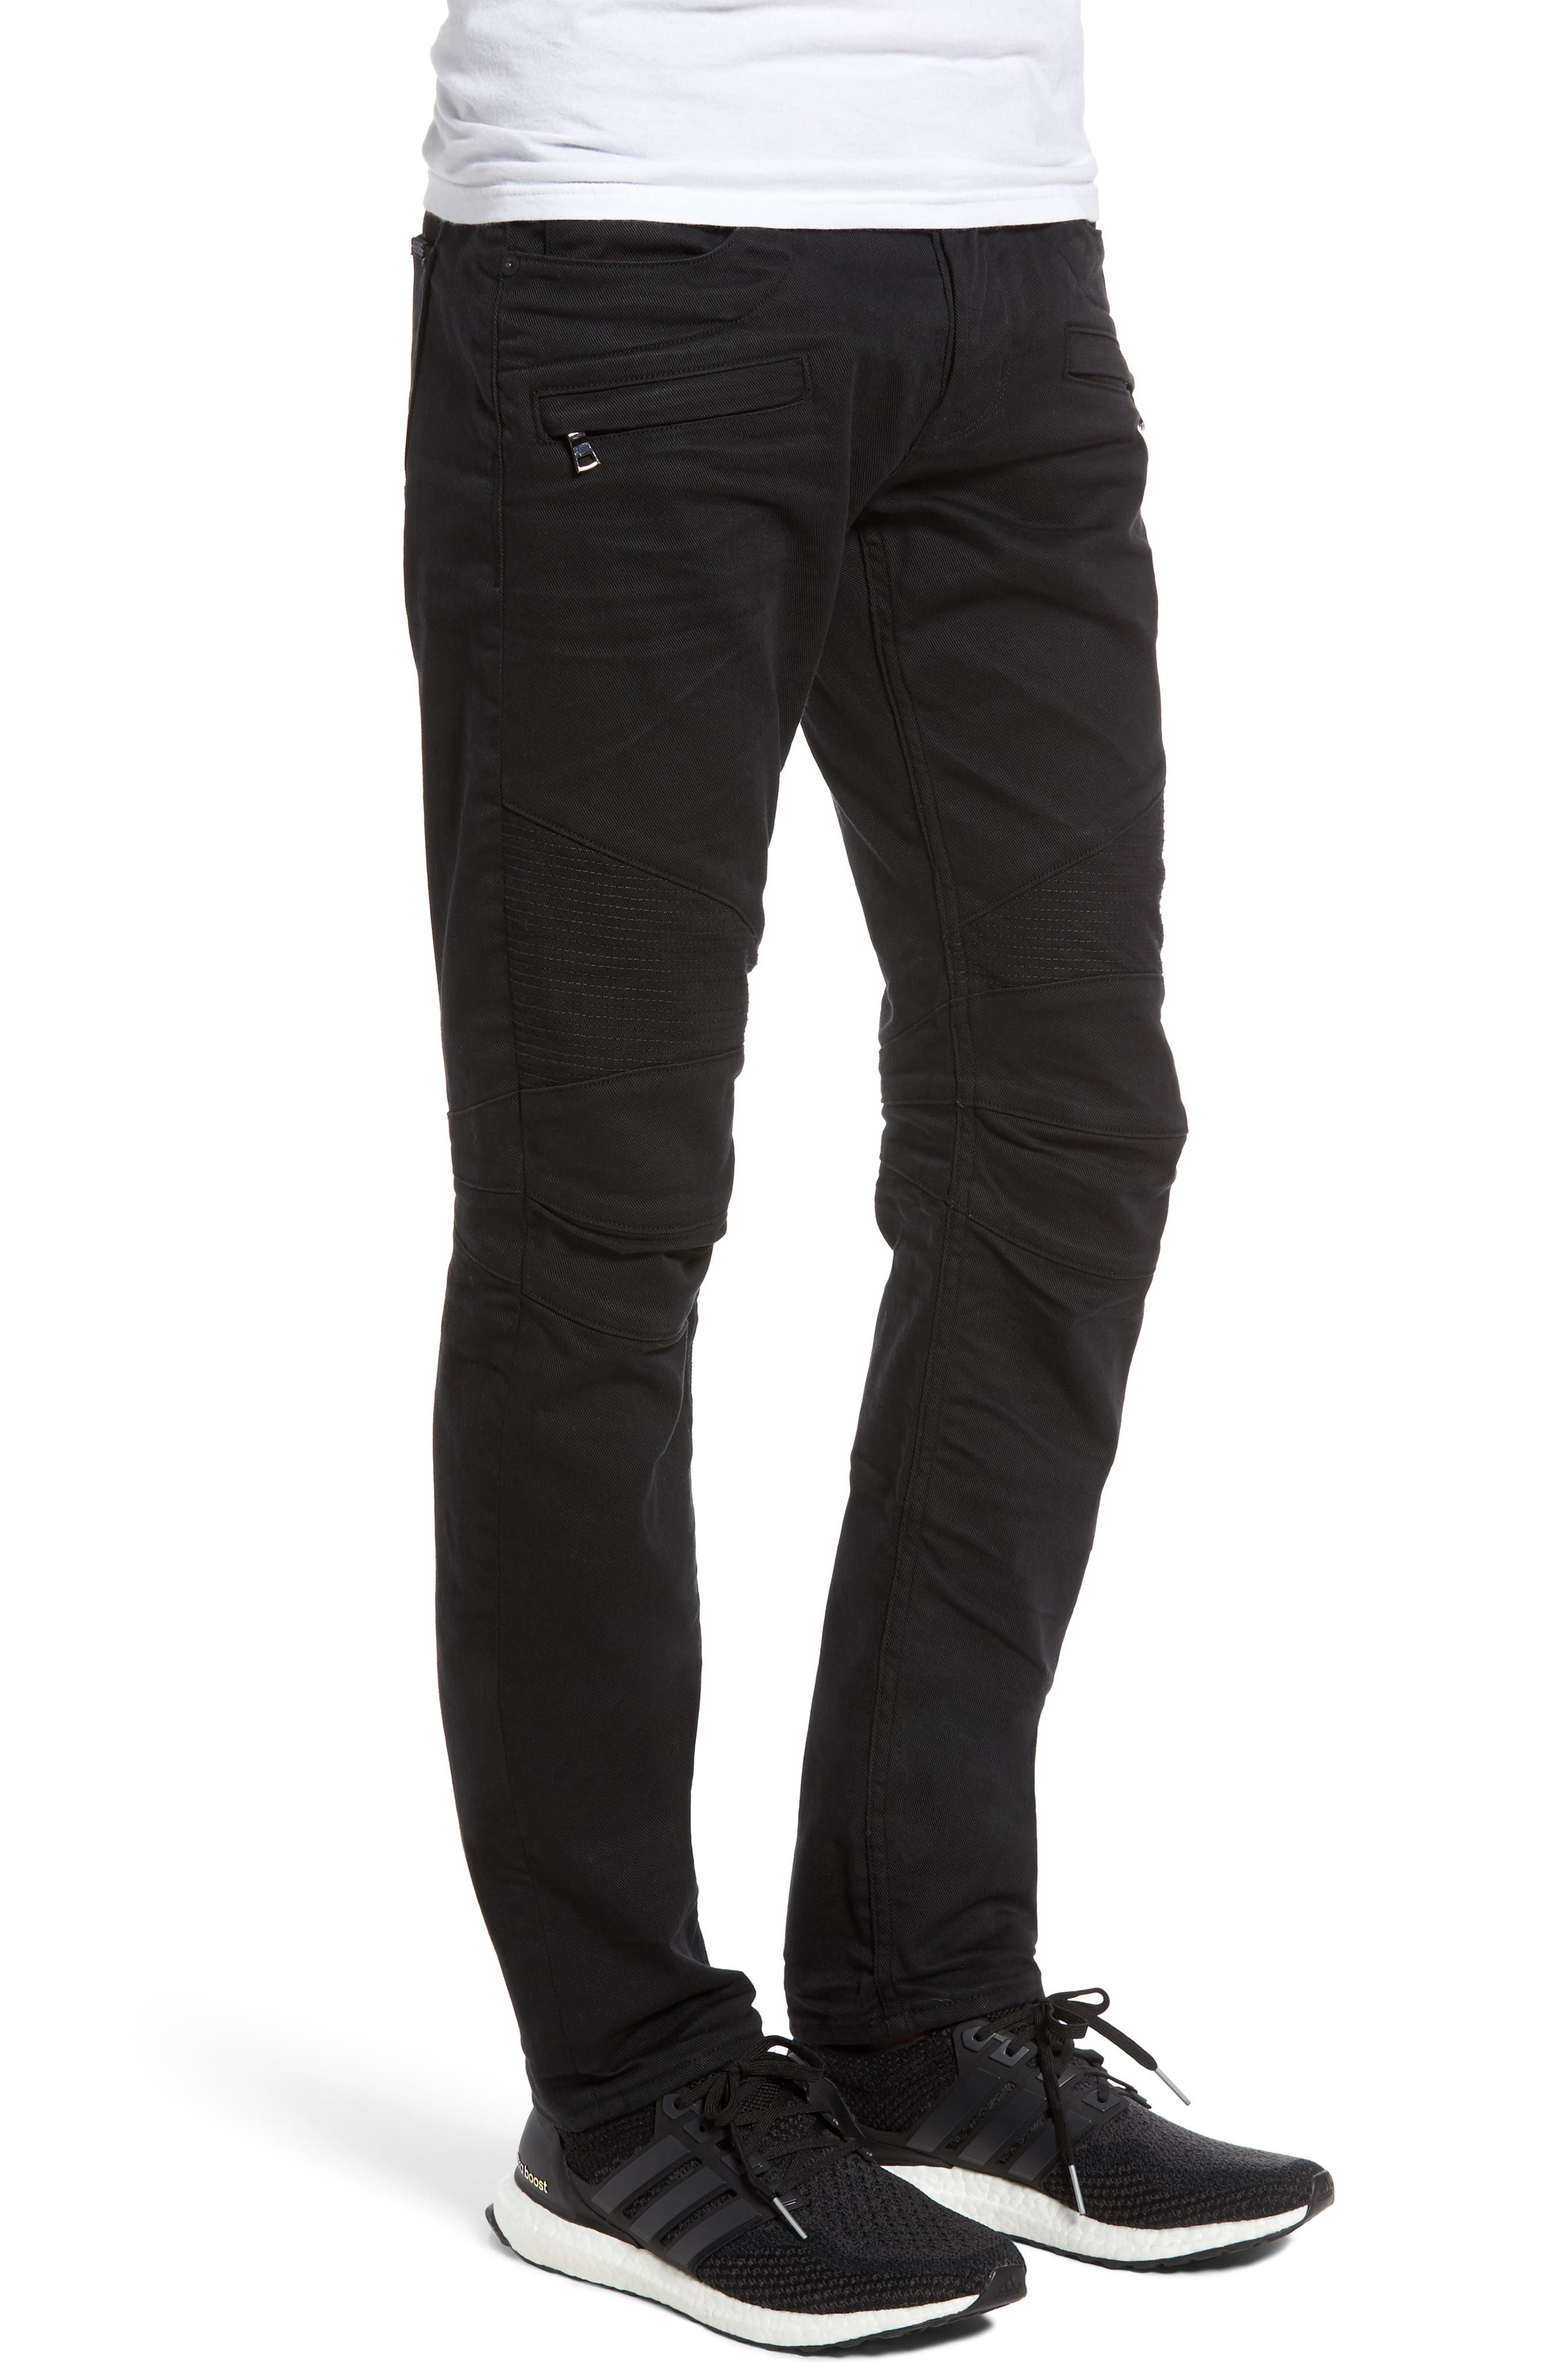 Blinder Biker Skinny Fit Jeans,                             Alternate thumbnail 3, color,                             BLACKLIGHT